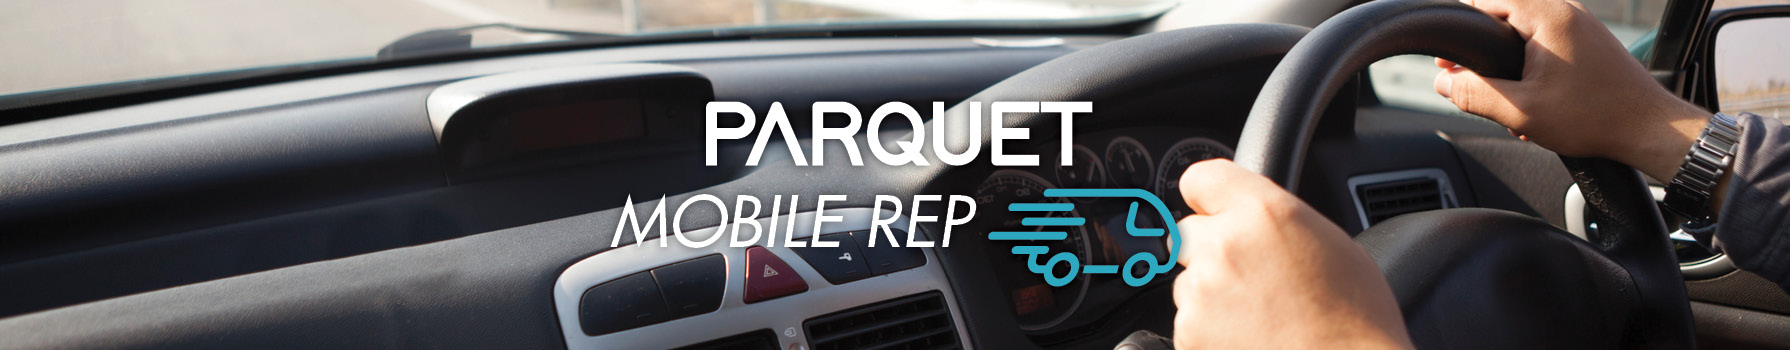 We Love Parquet Mobile Rep